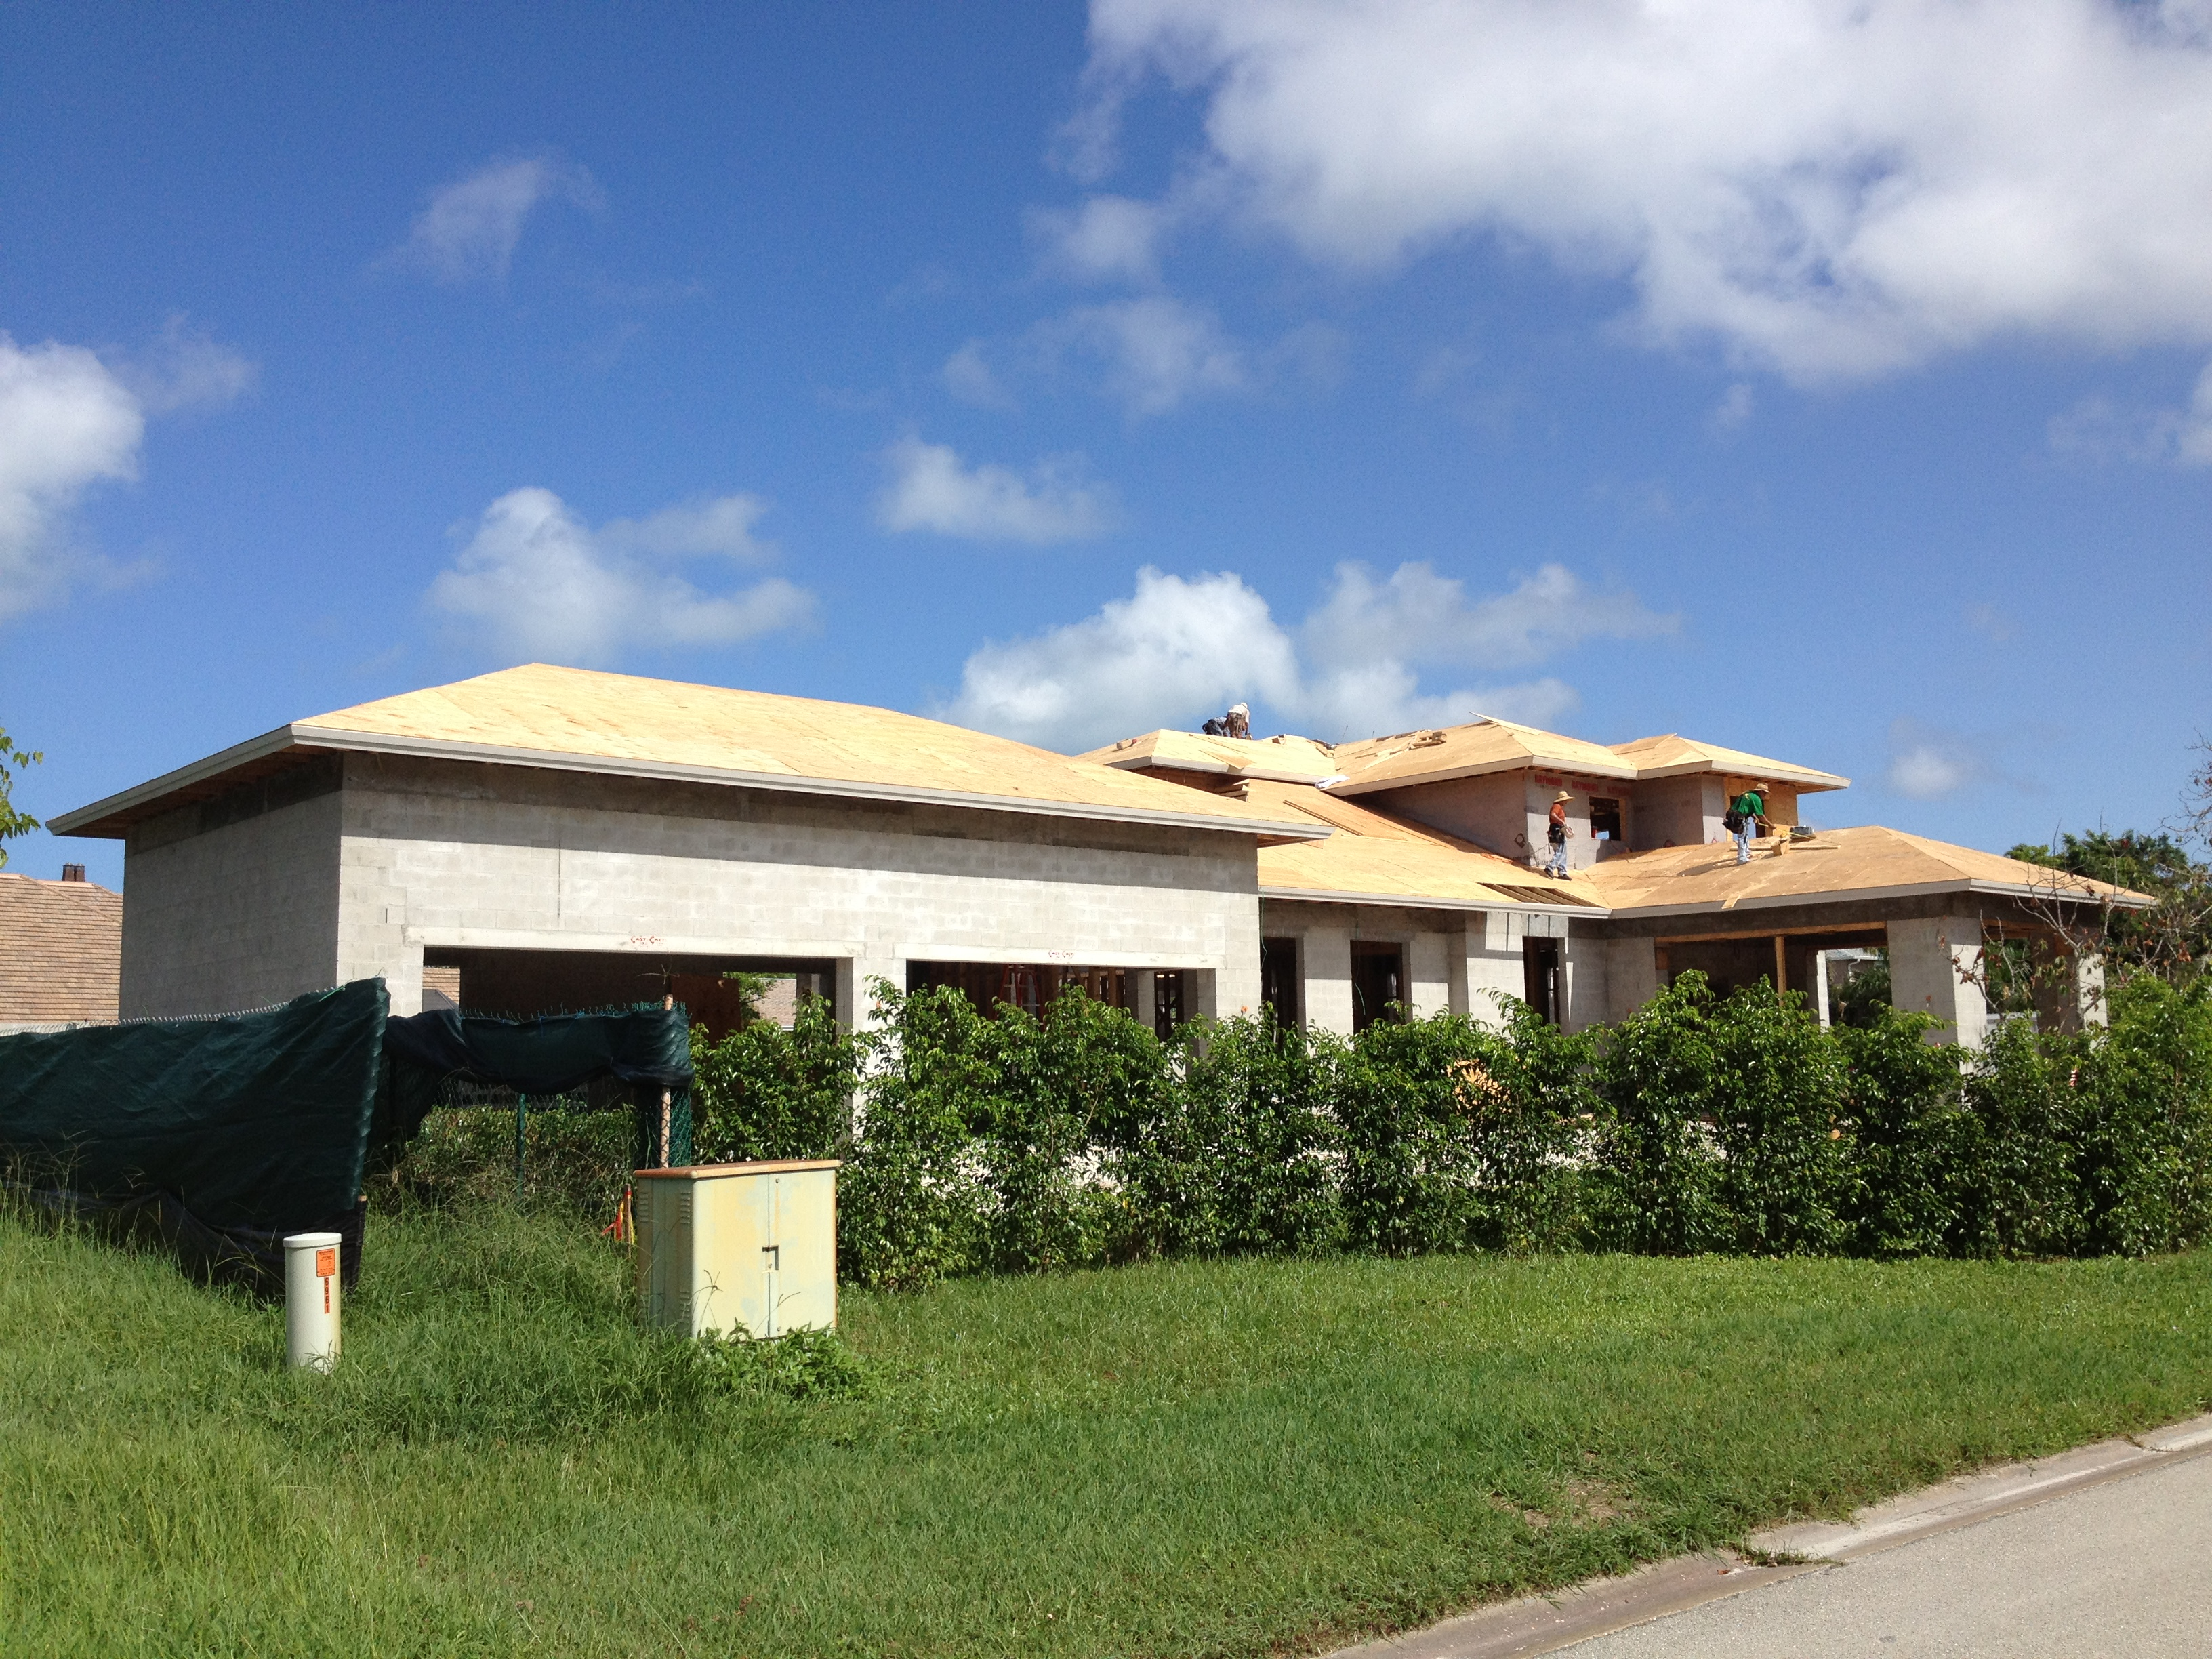 Hinspeter Roofing Naples Florida Roofer Port Royal